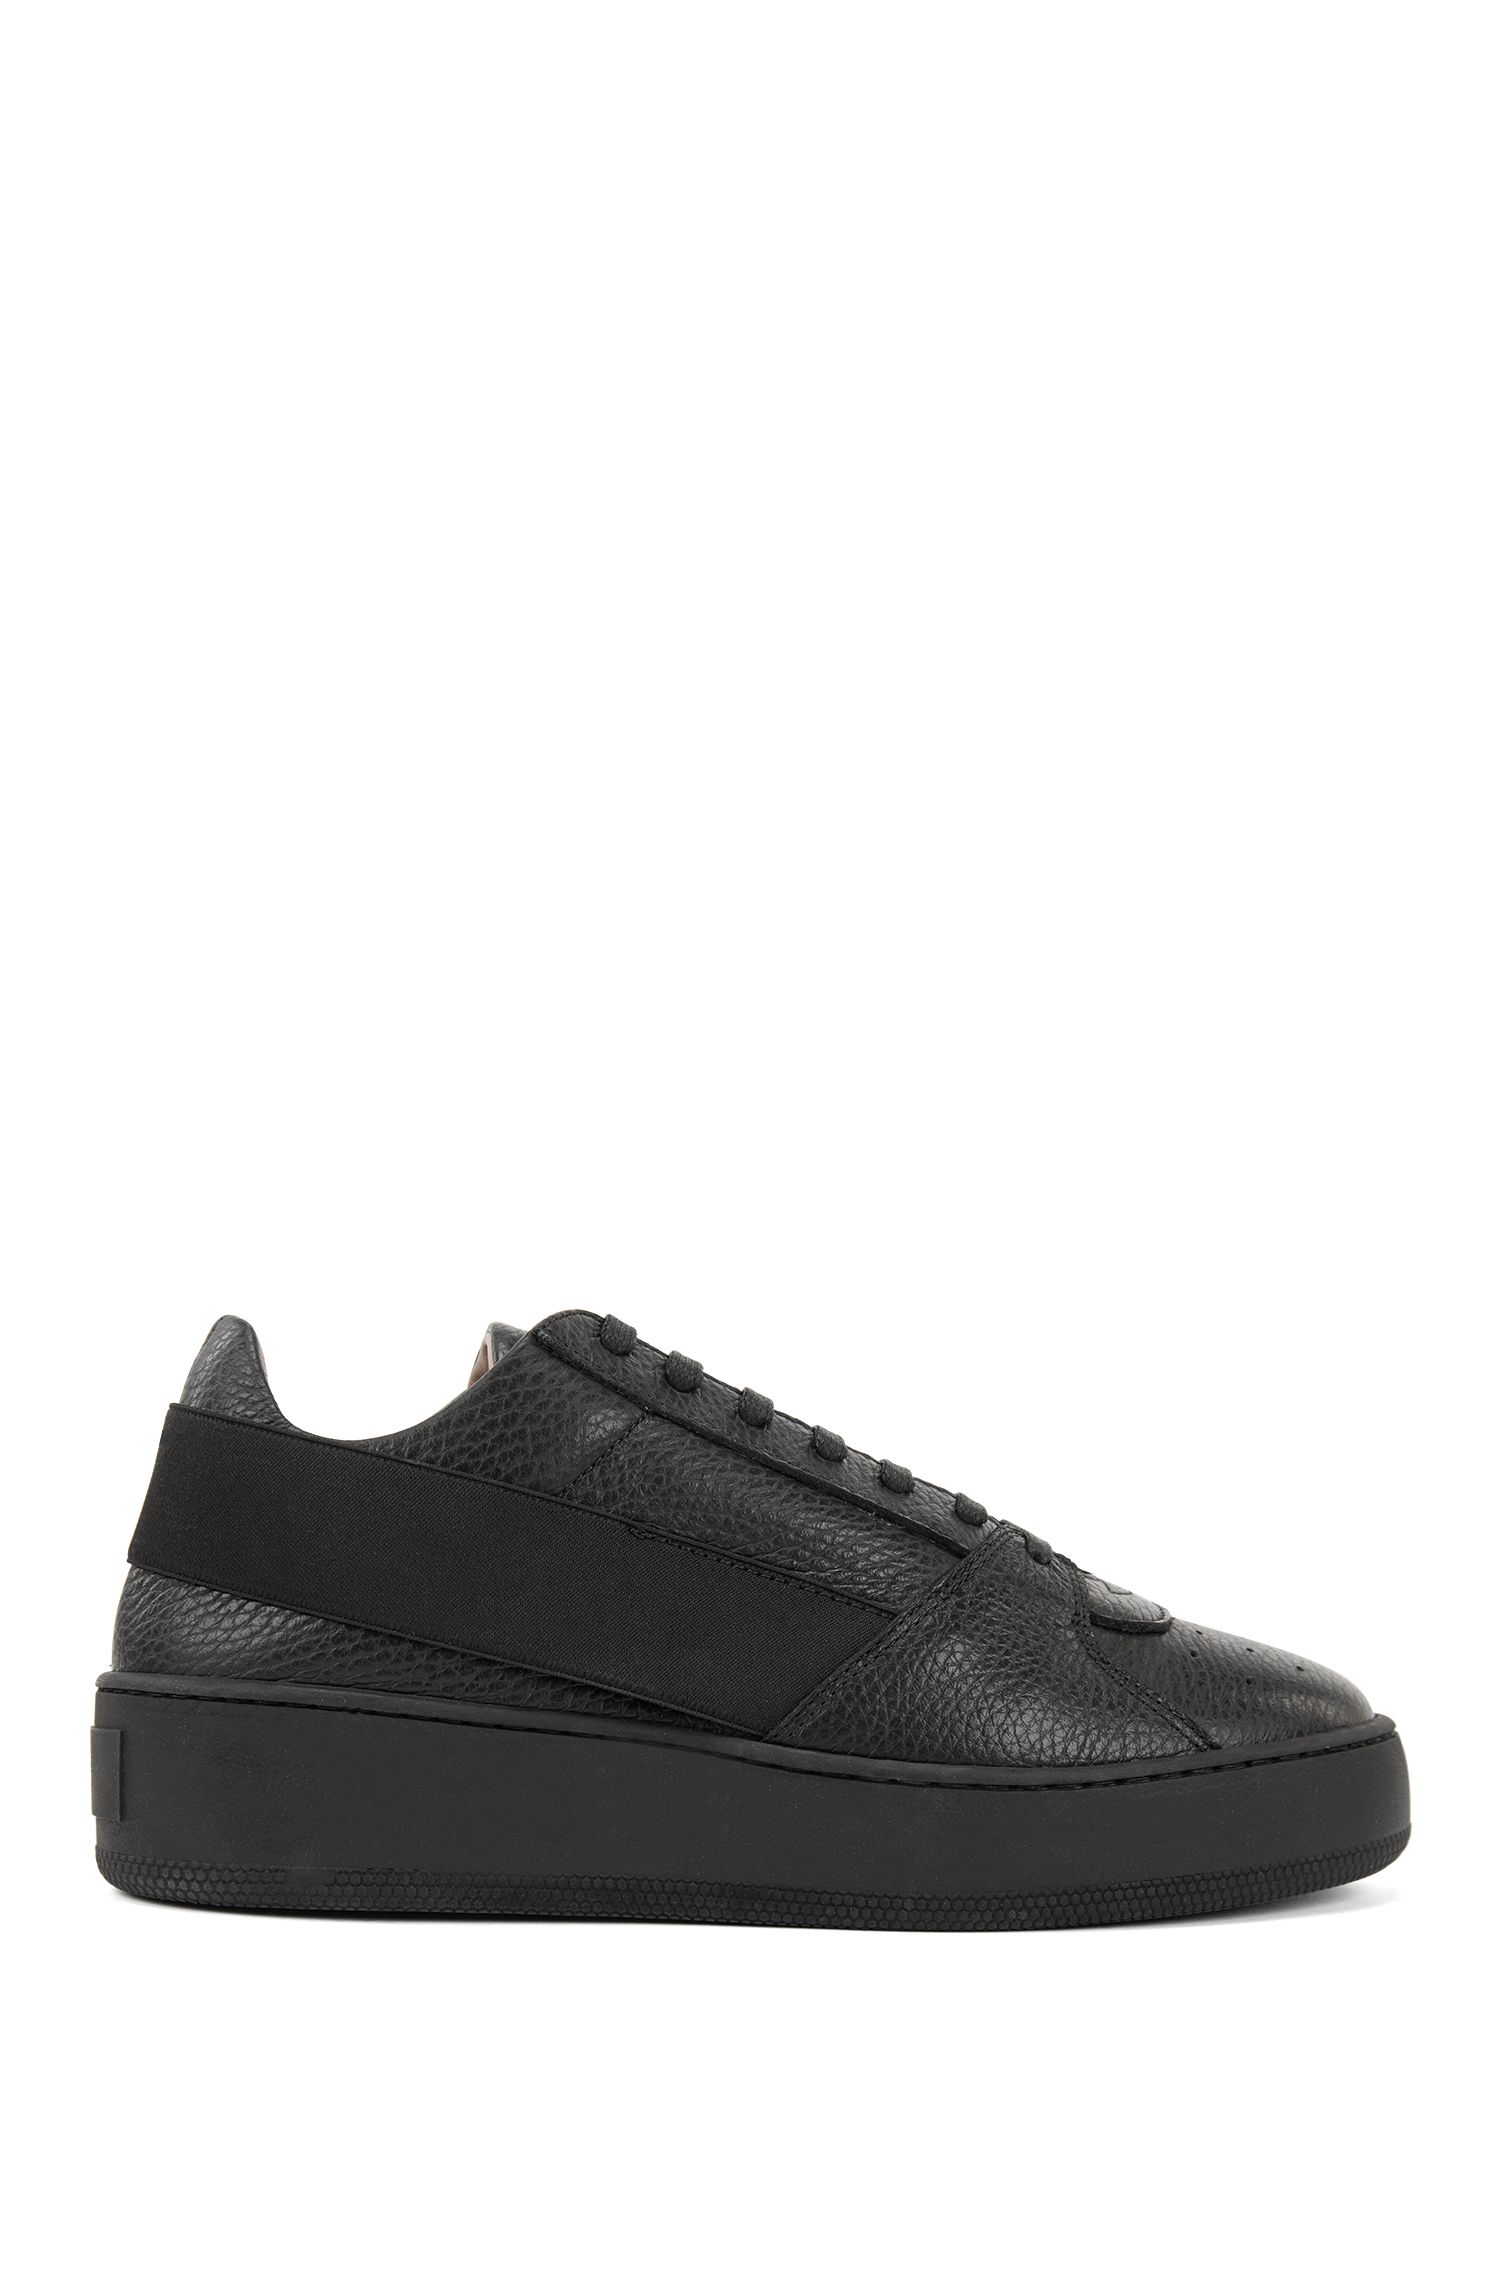 Low-top leather sneakers with elastic strap and platform sole, Black